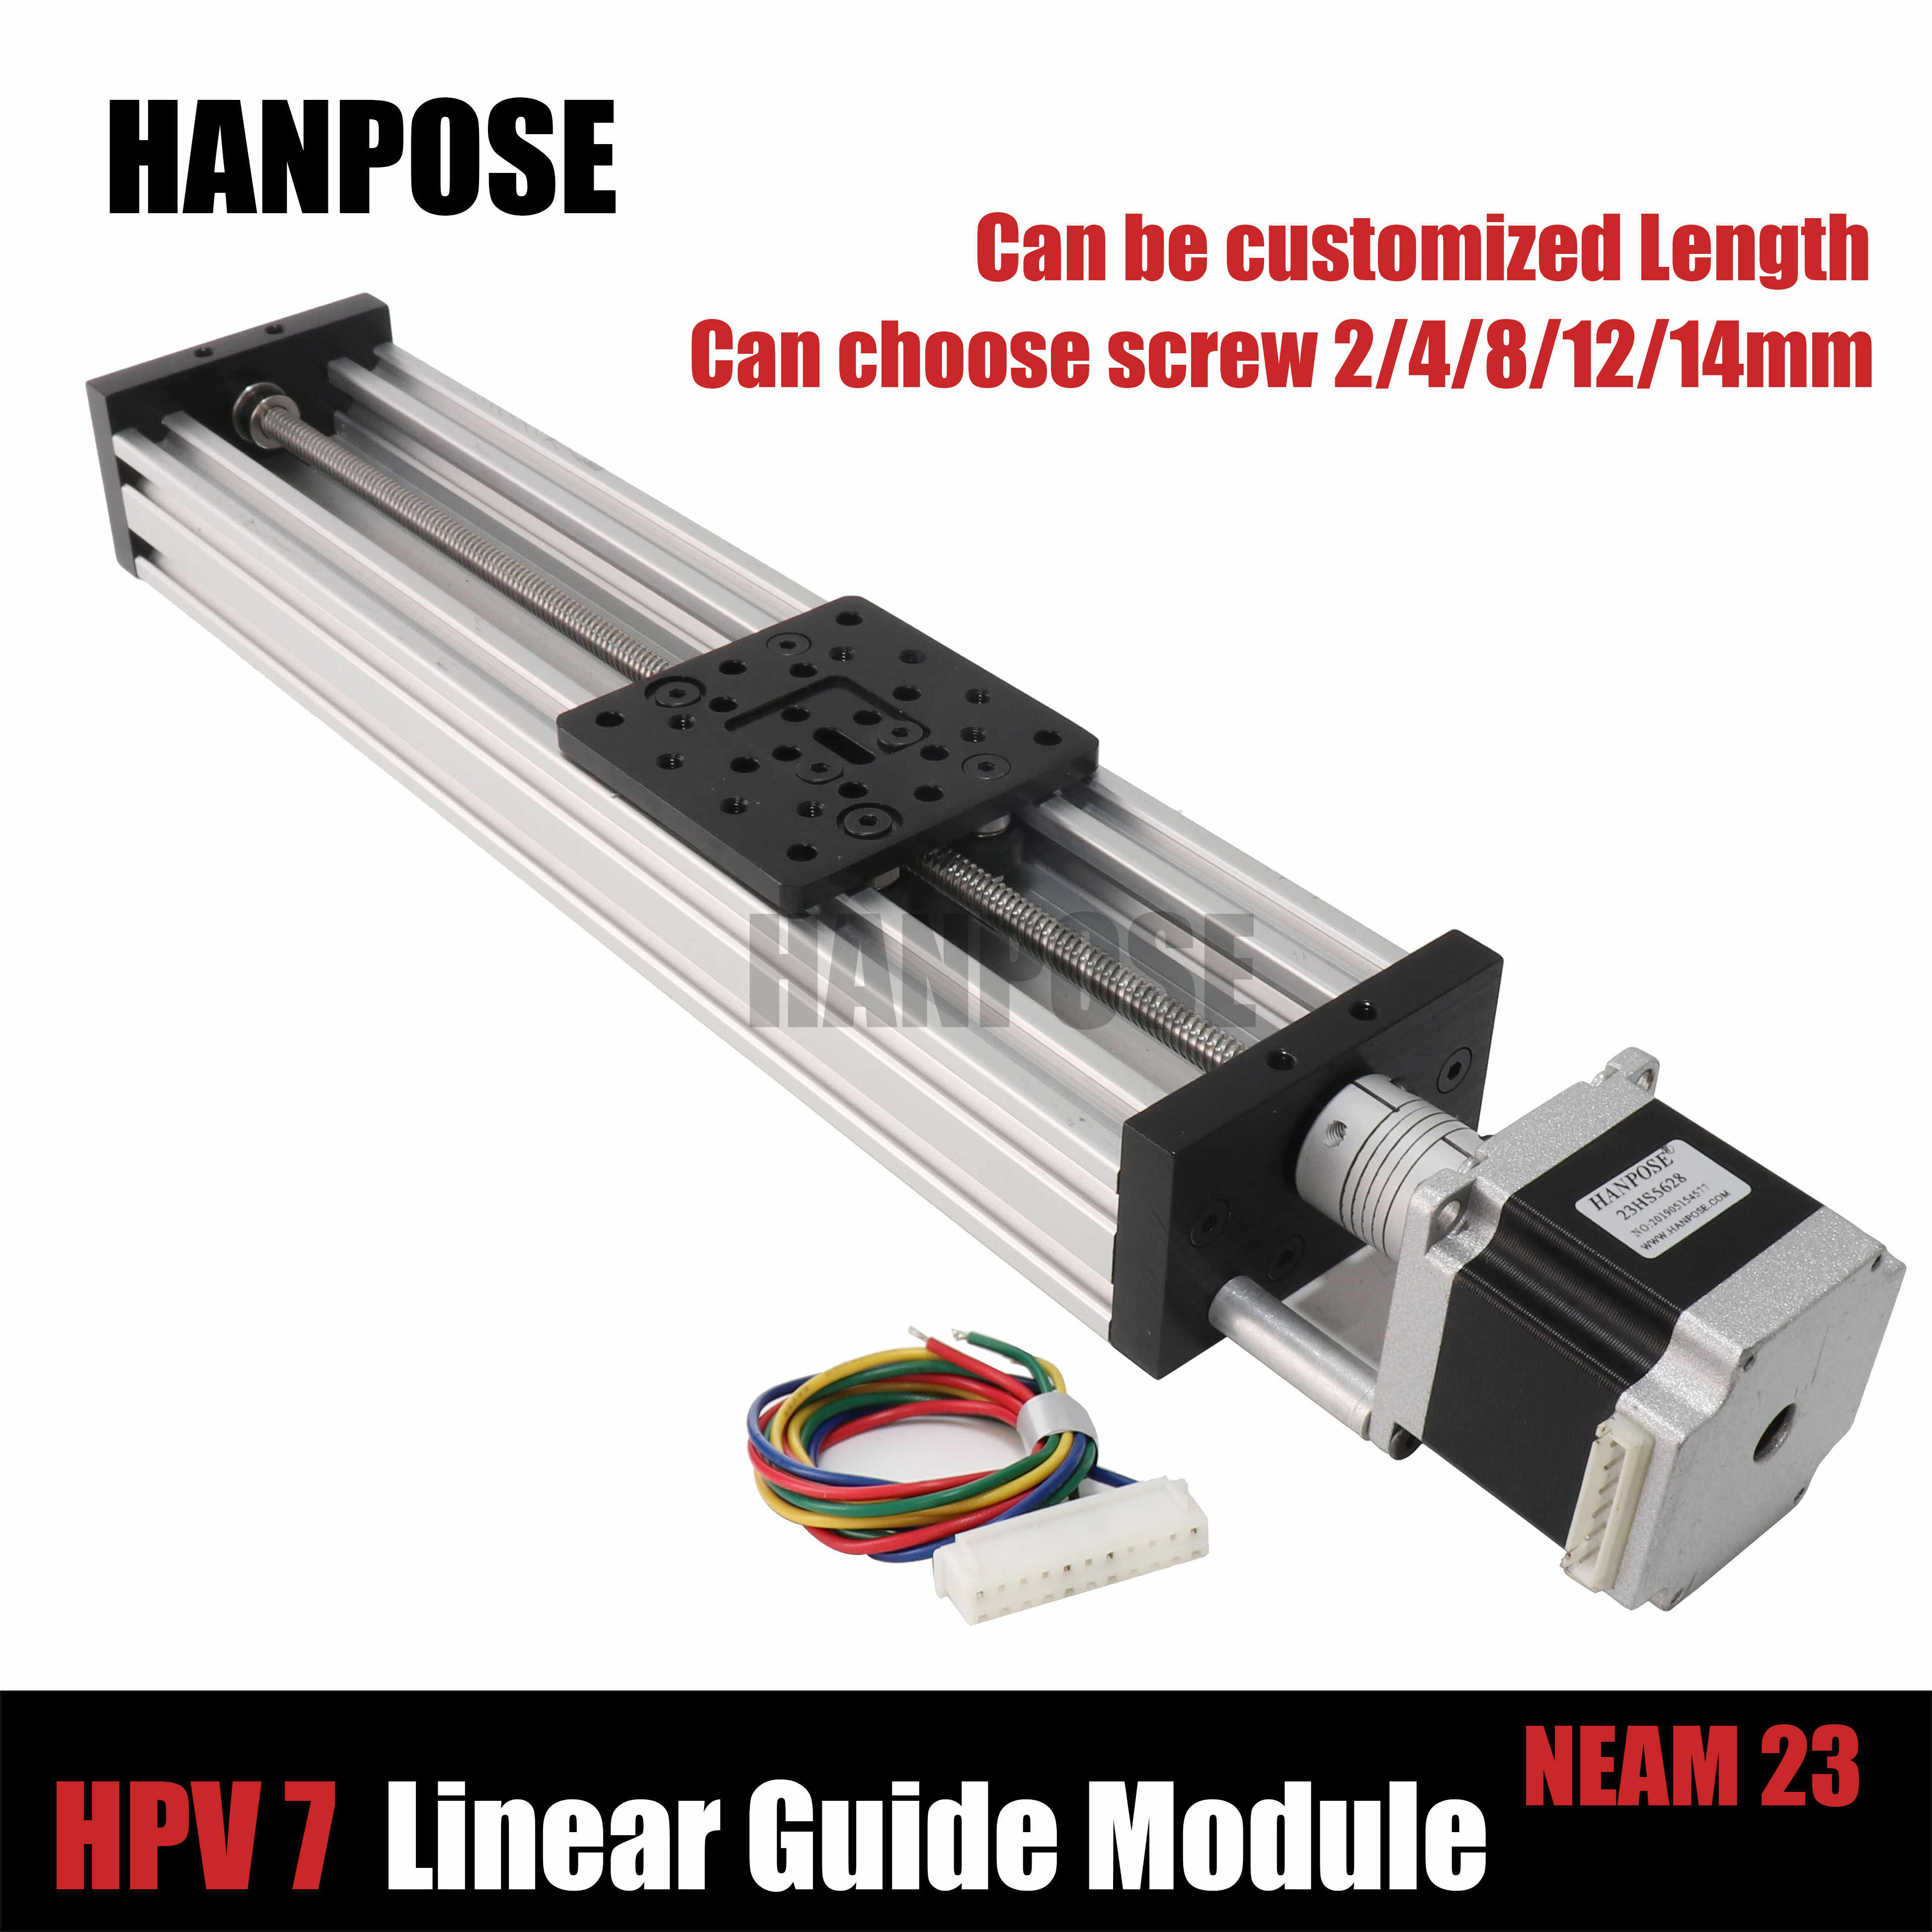 HPV7 Openbuilds C-Beam Linear Actuator Z axis t8 lead screw Pitch 2/4/8/12/14mm NEMA 23 2.8A stepper motor for Reprap 3D Printer